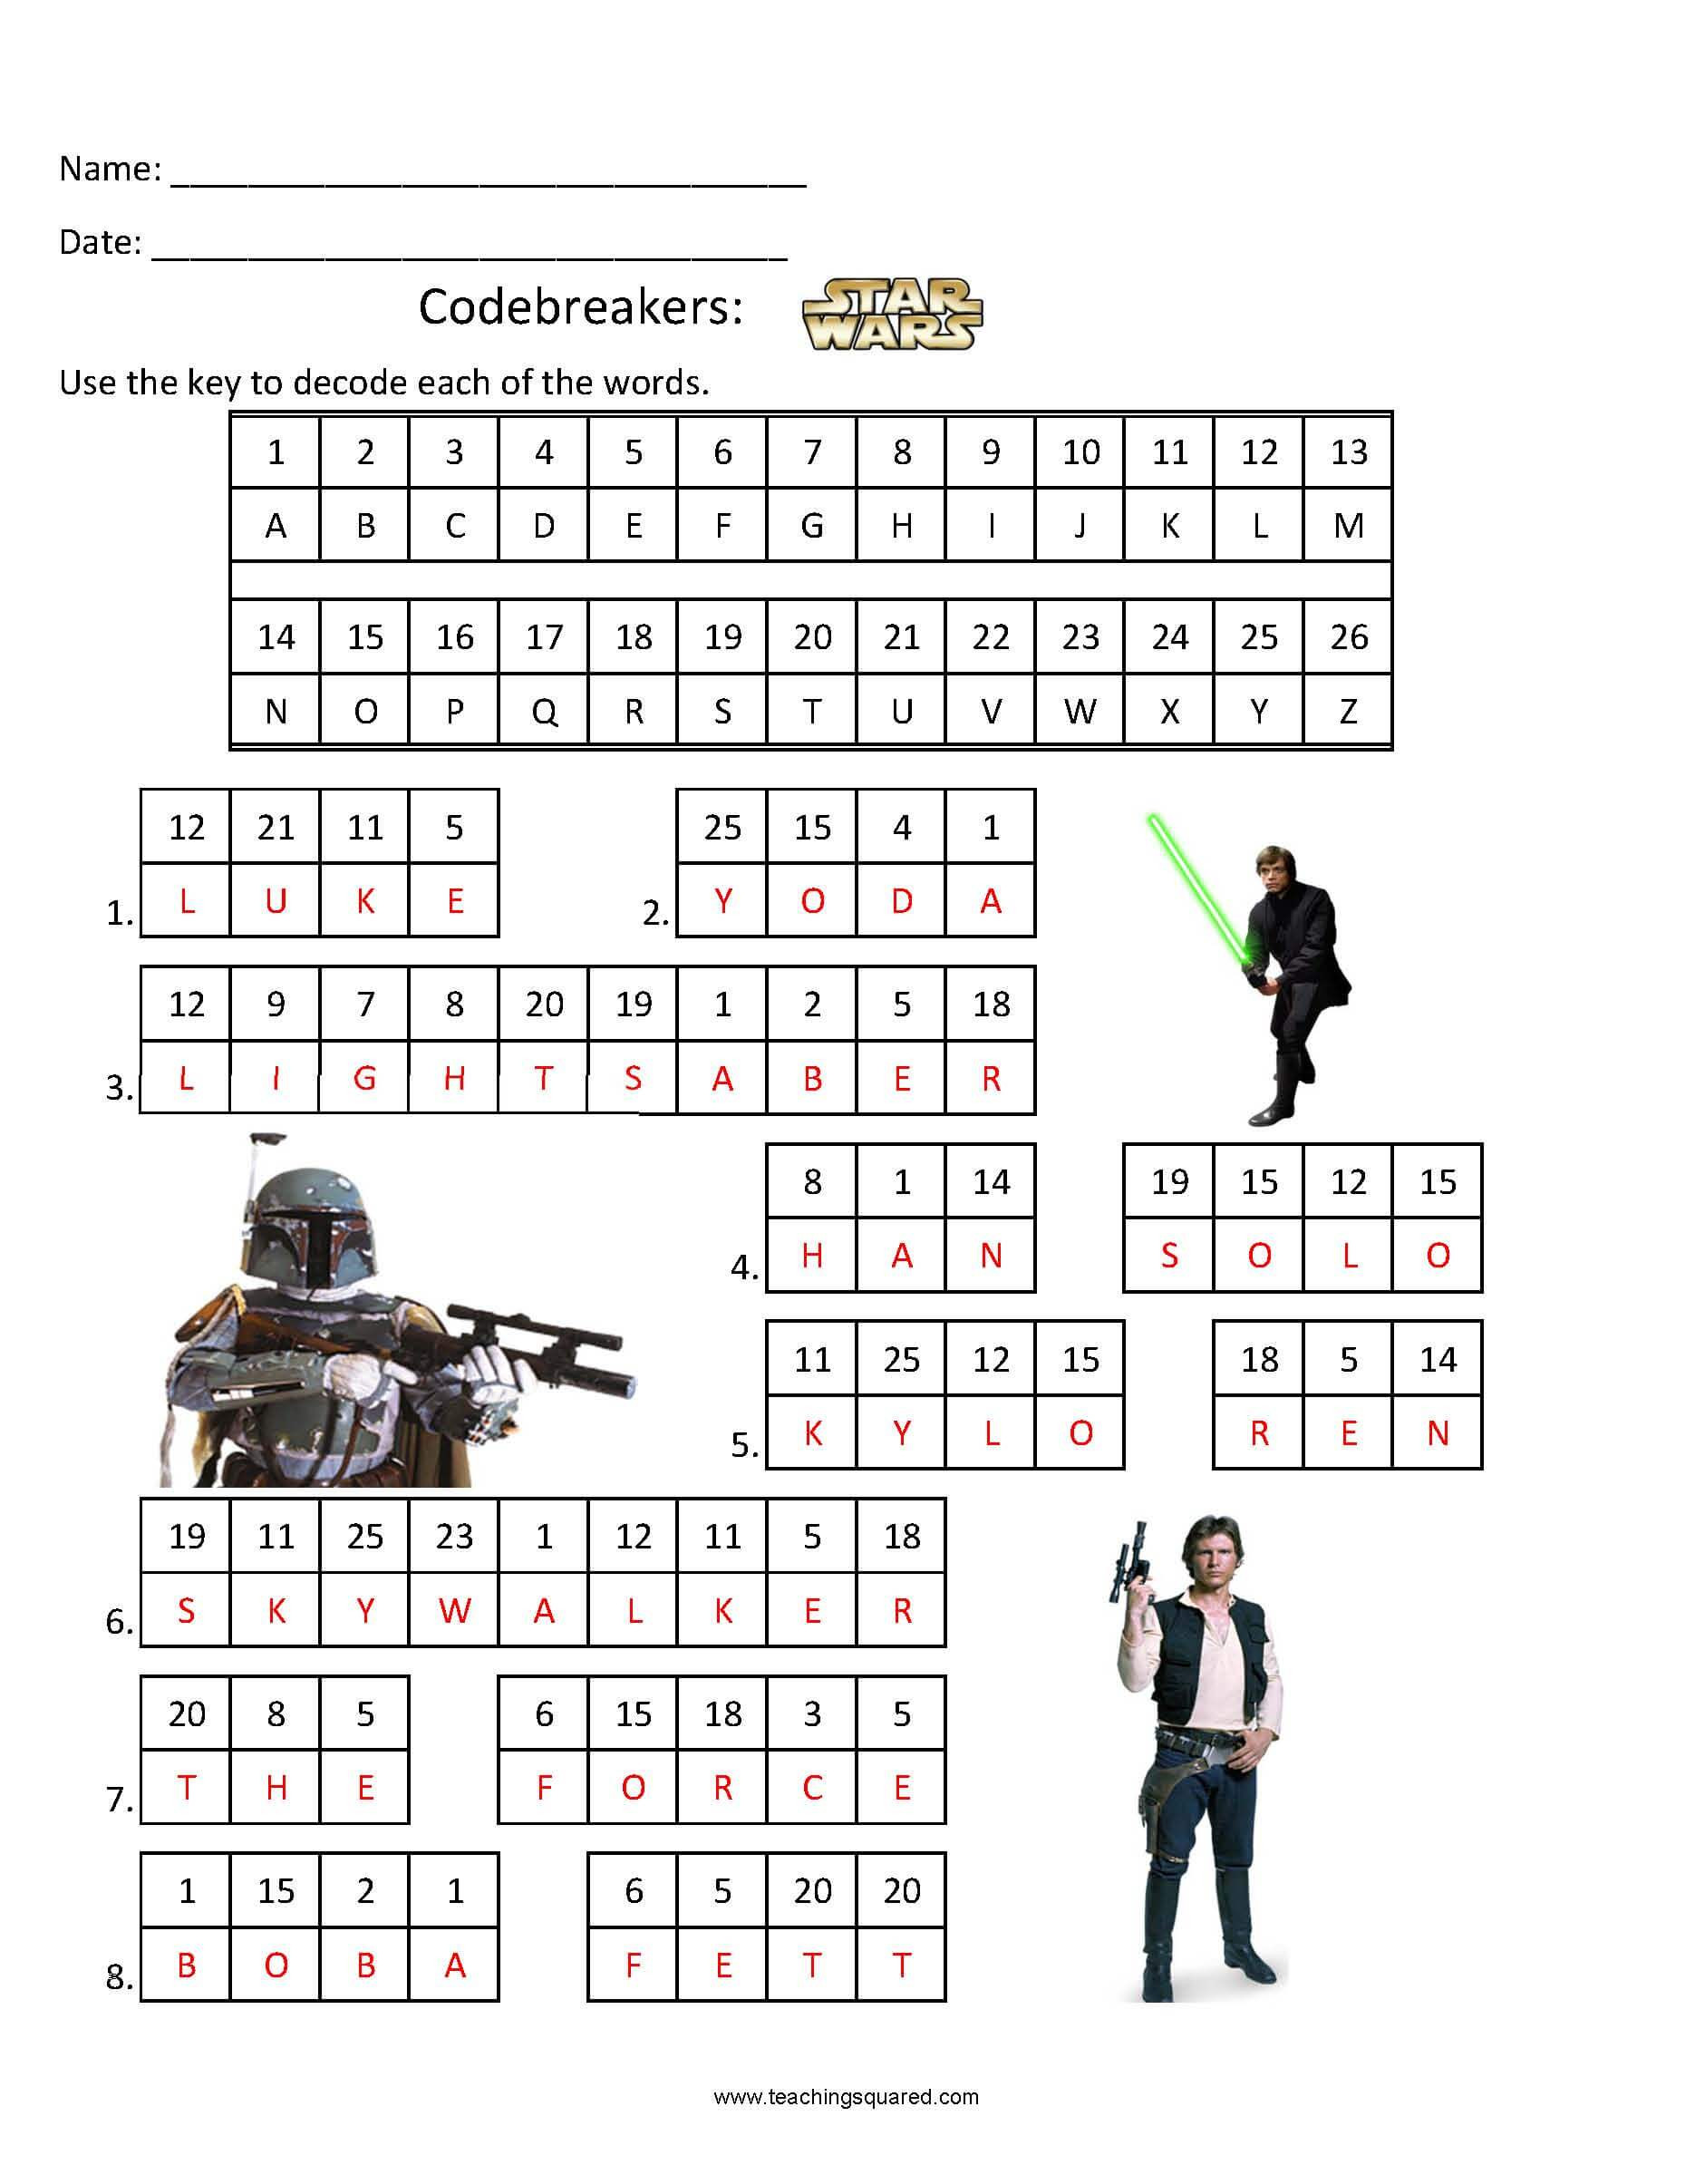 Star Wars Maths Worksheets Codebreakers Star Wars 1 Teaching Squared